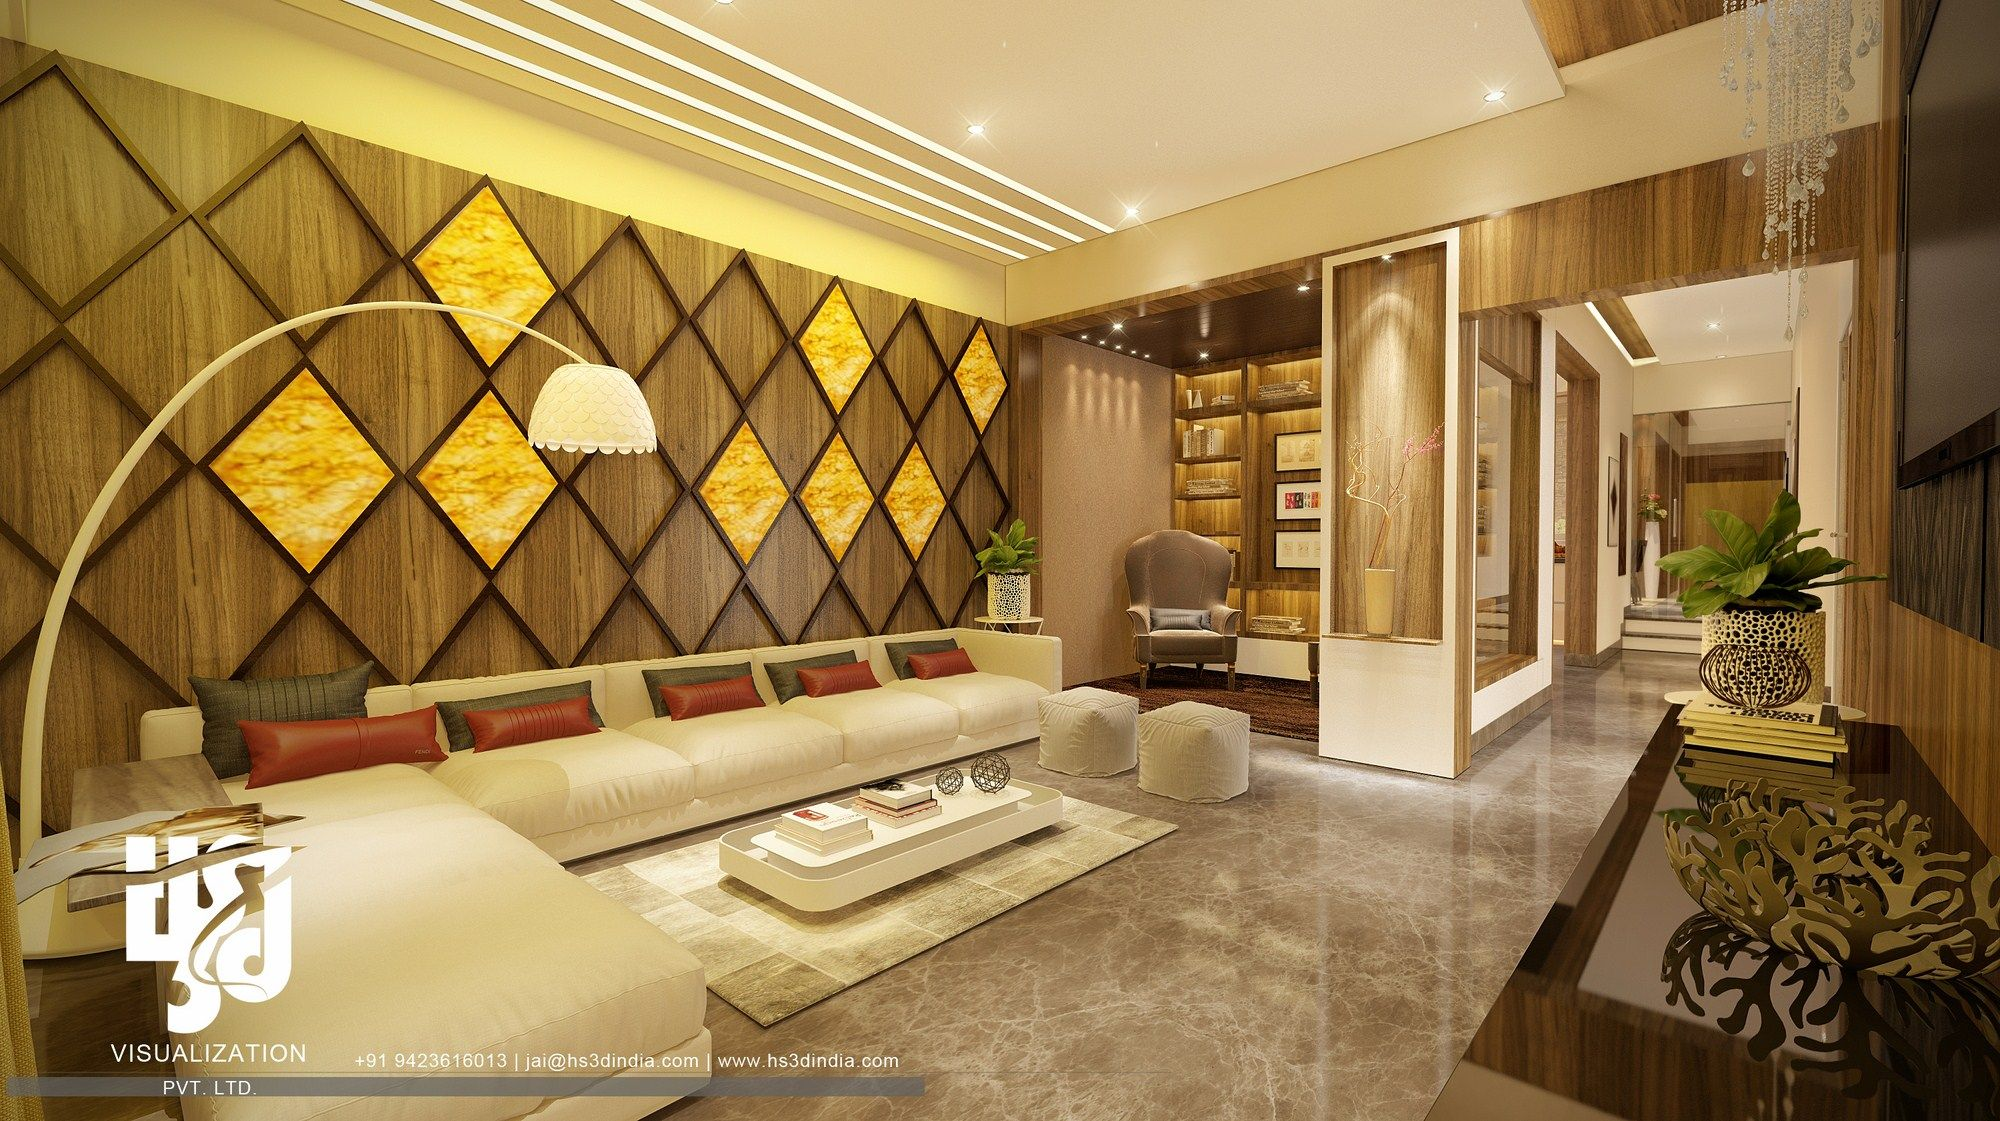 Httpswwwhs3Dindiacominterior Residential